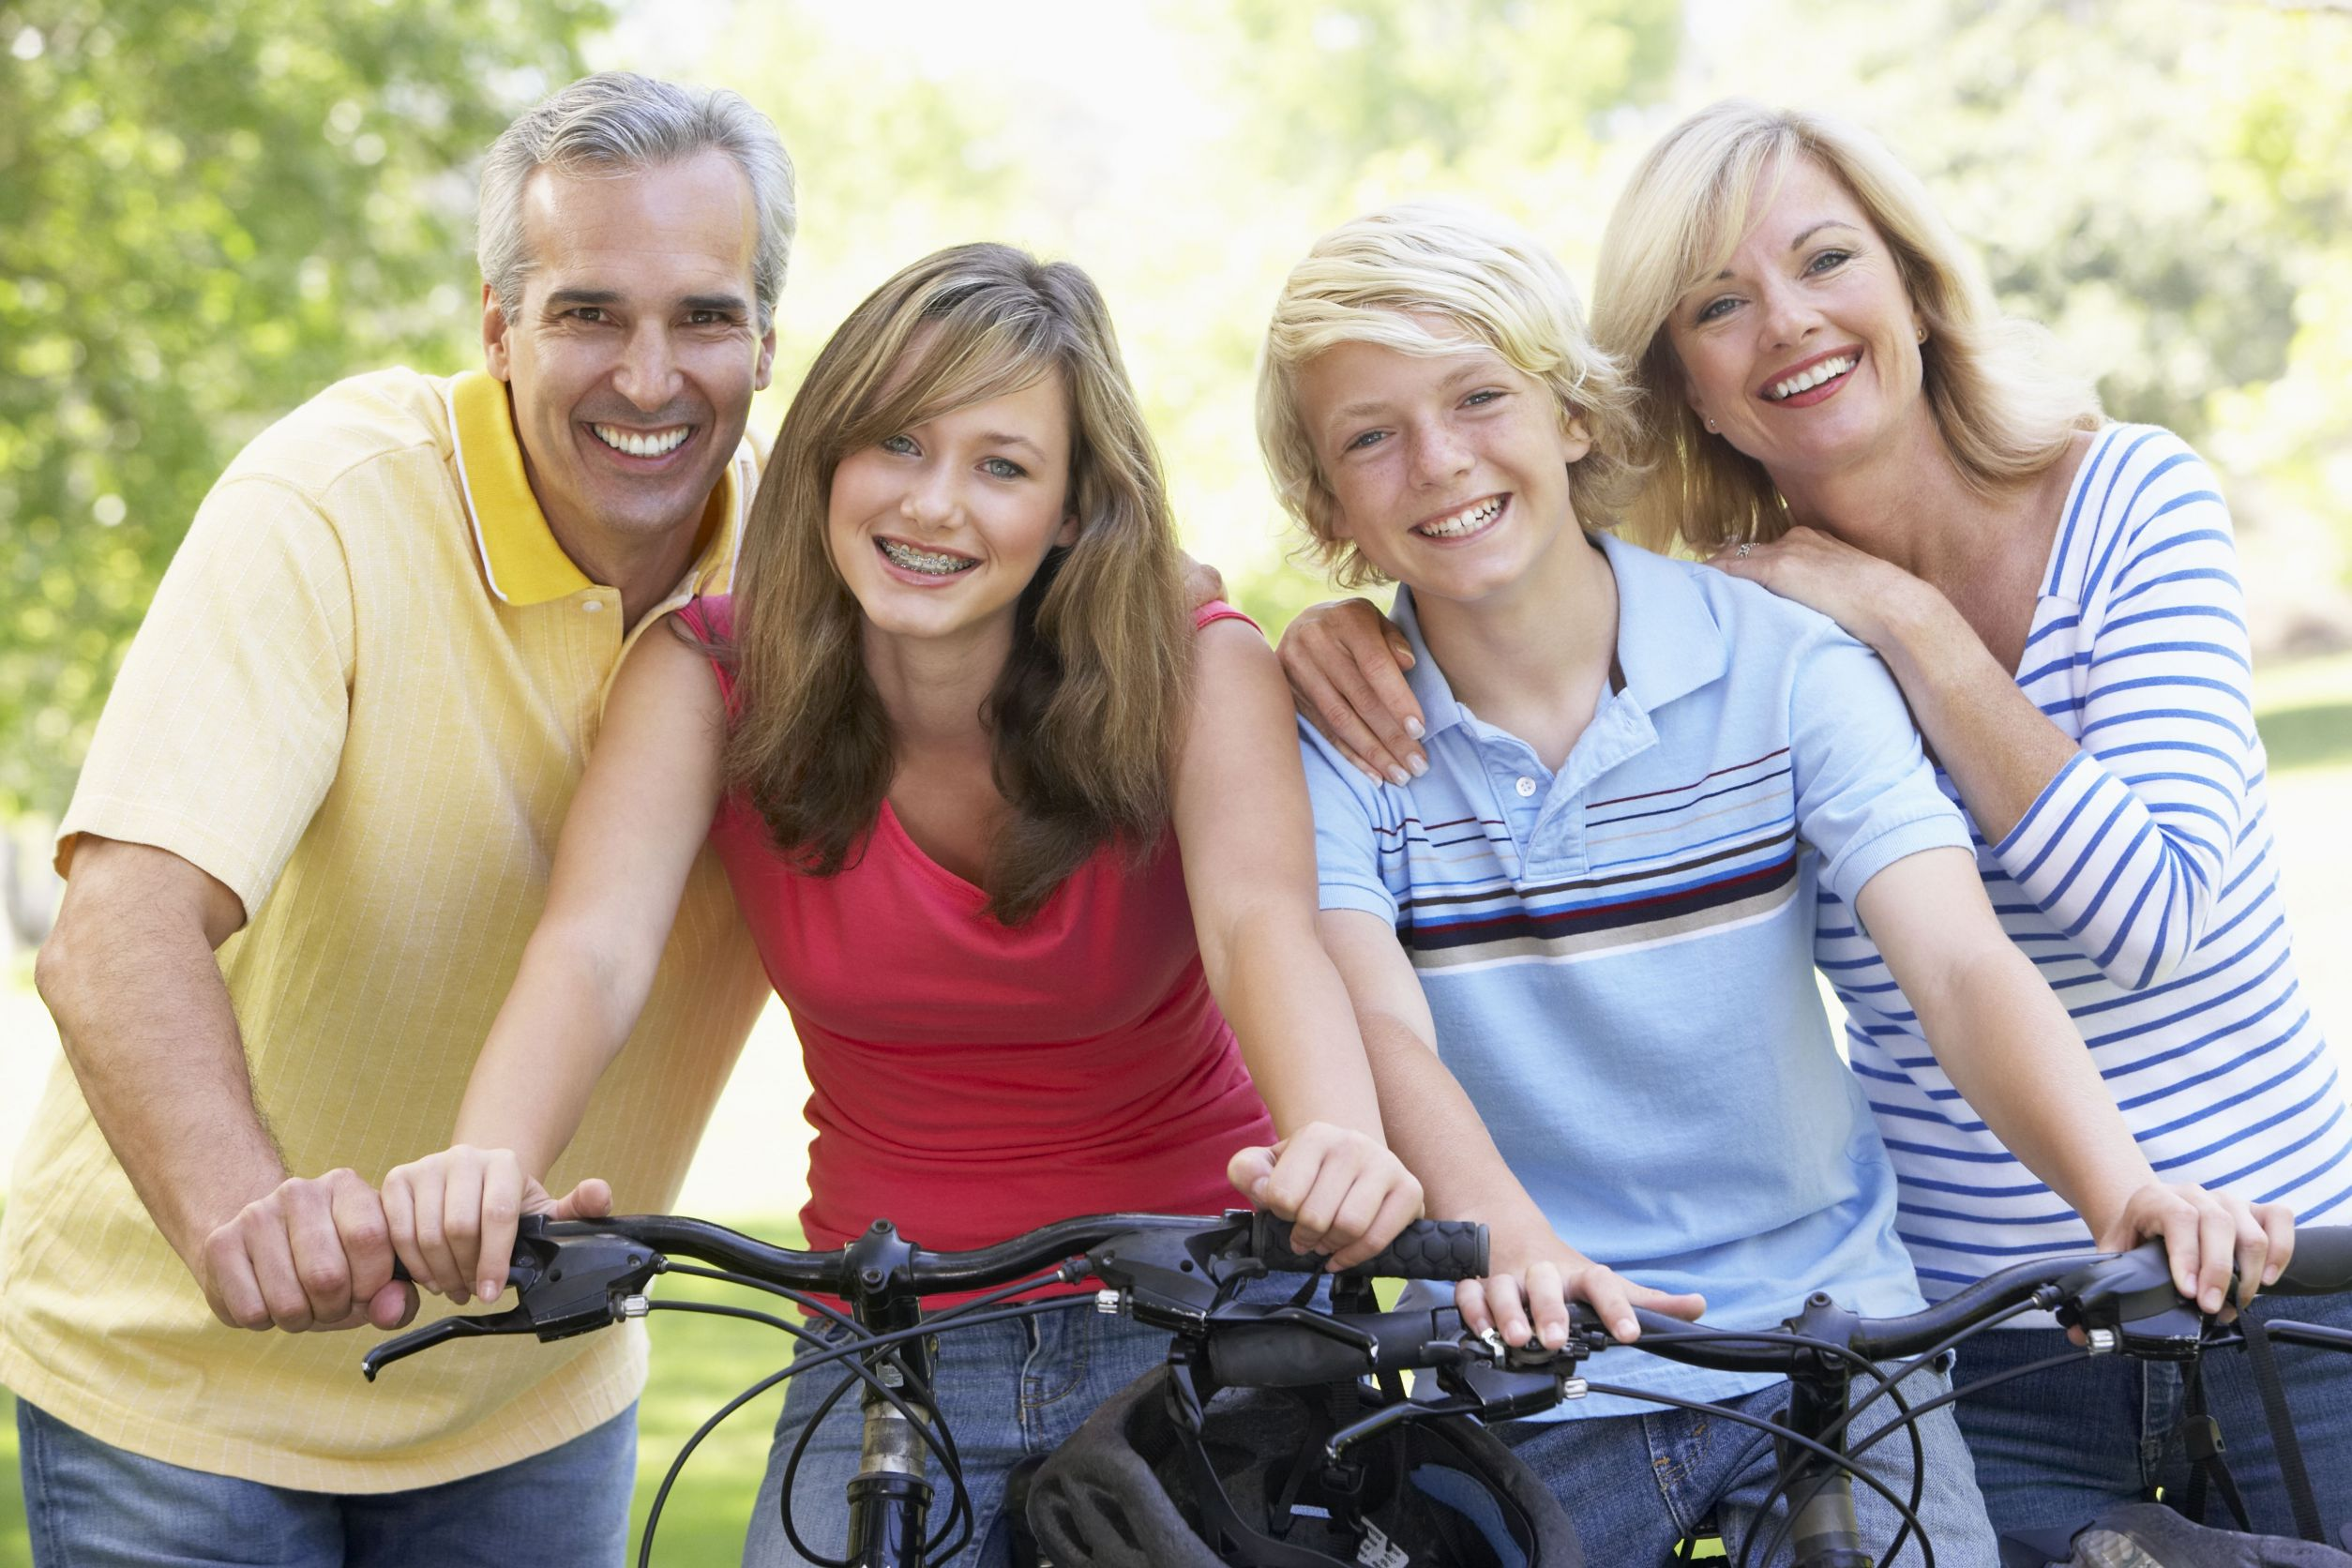 Family smiling while riding bicycles